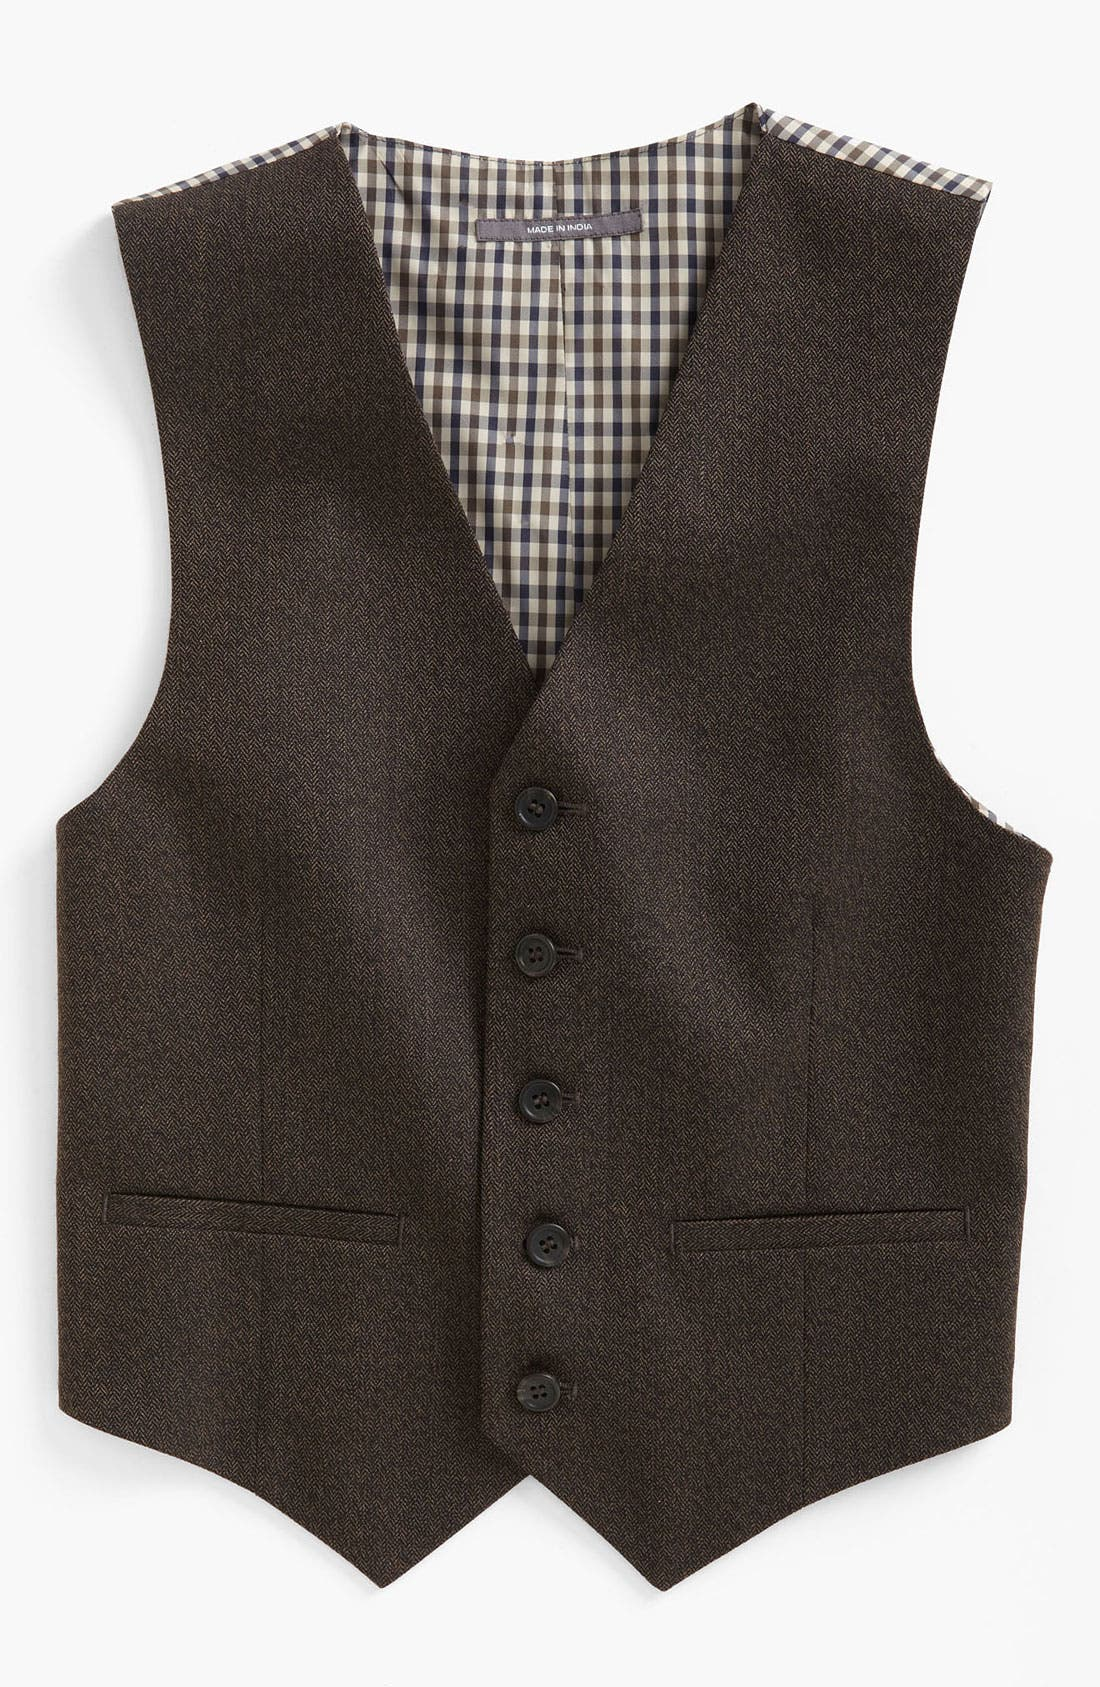 Main Image - Nordstrom 'Andrew' Herringbone Vest (Little Boys)